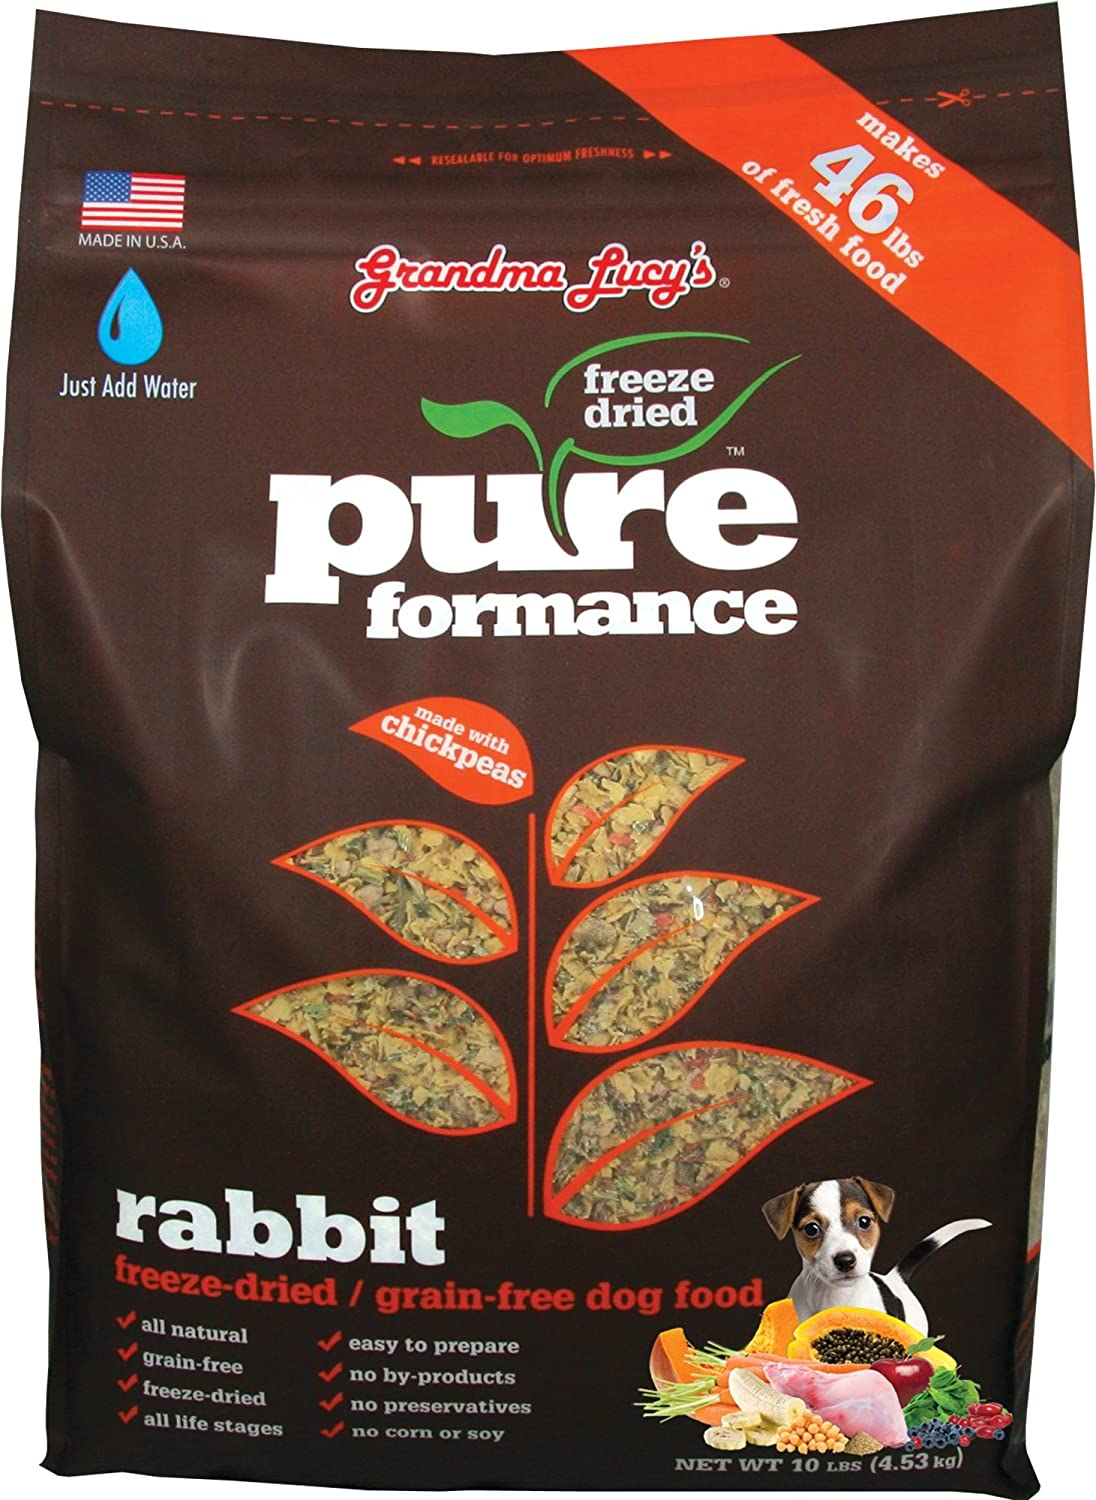 Grandma Lucy's PUREformance Dog Food, Grain Free and Freeze-Dried - Rabbit, 10 Pound Bag